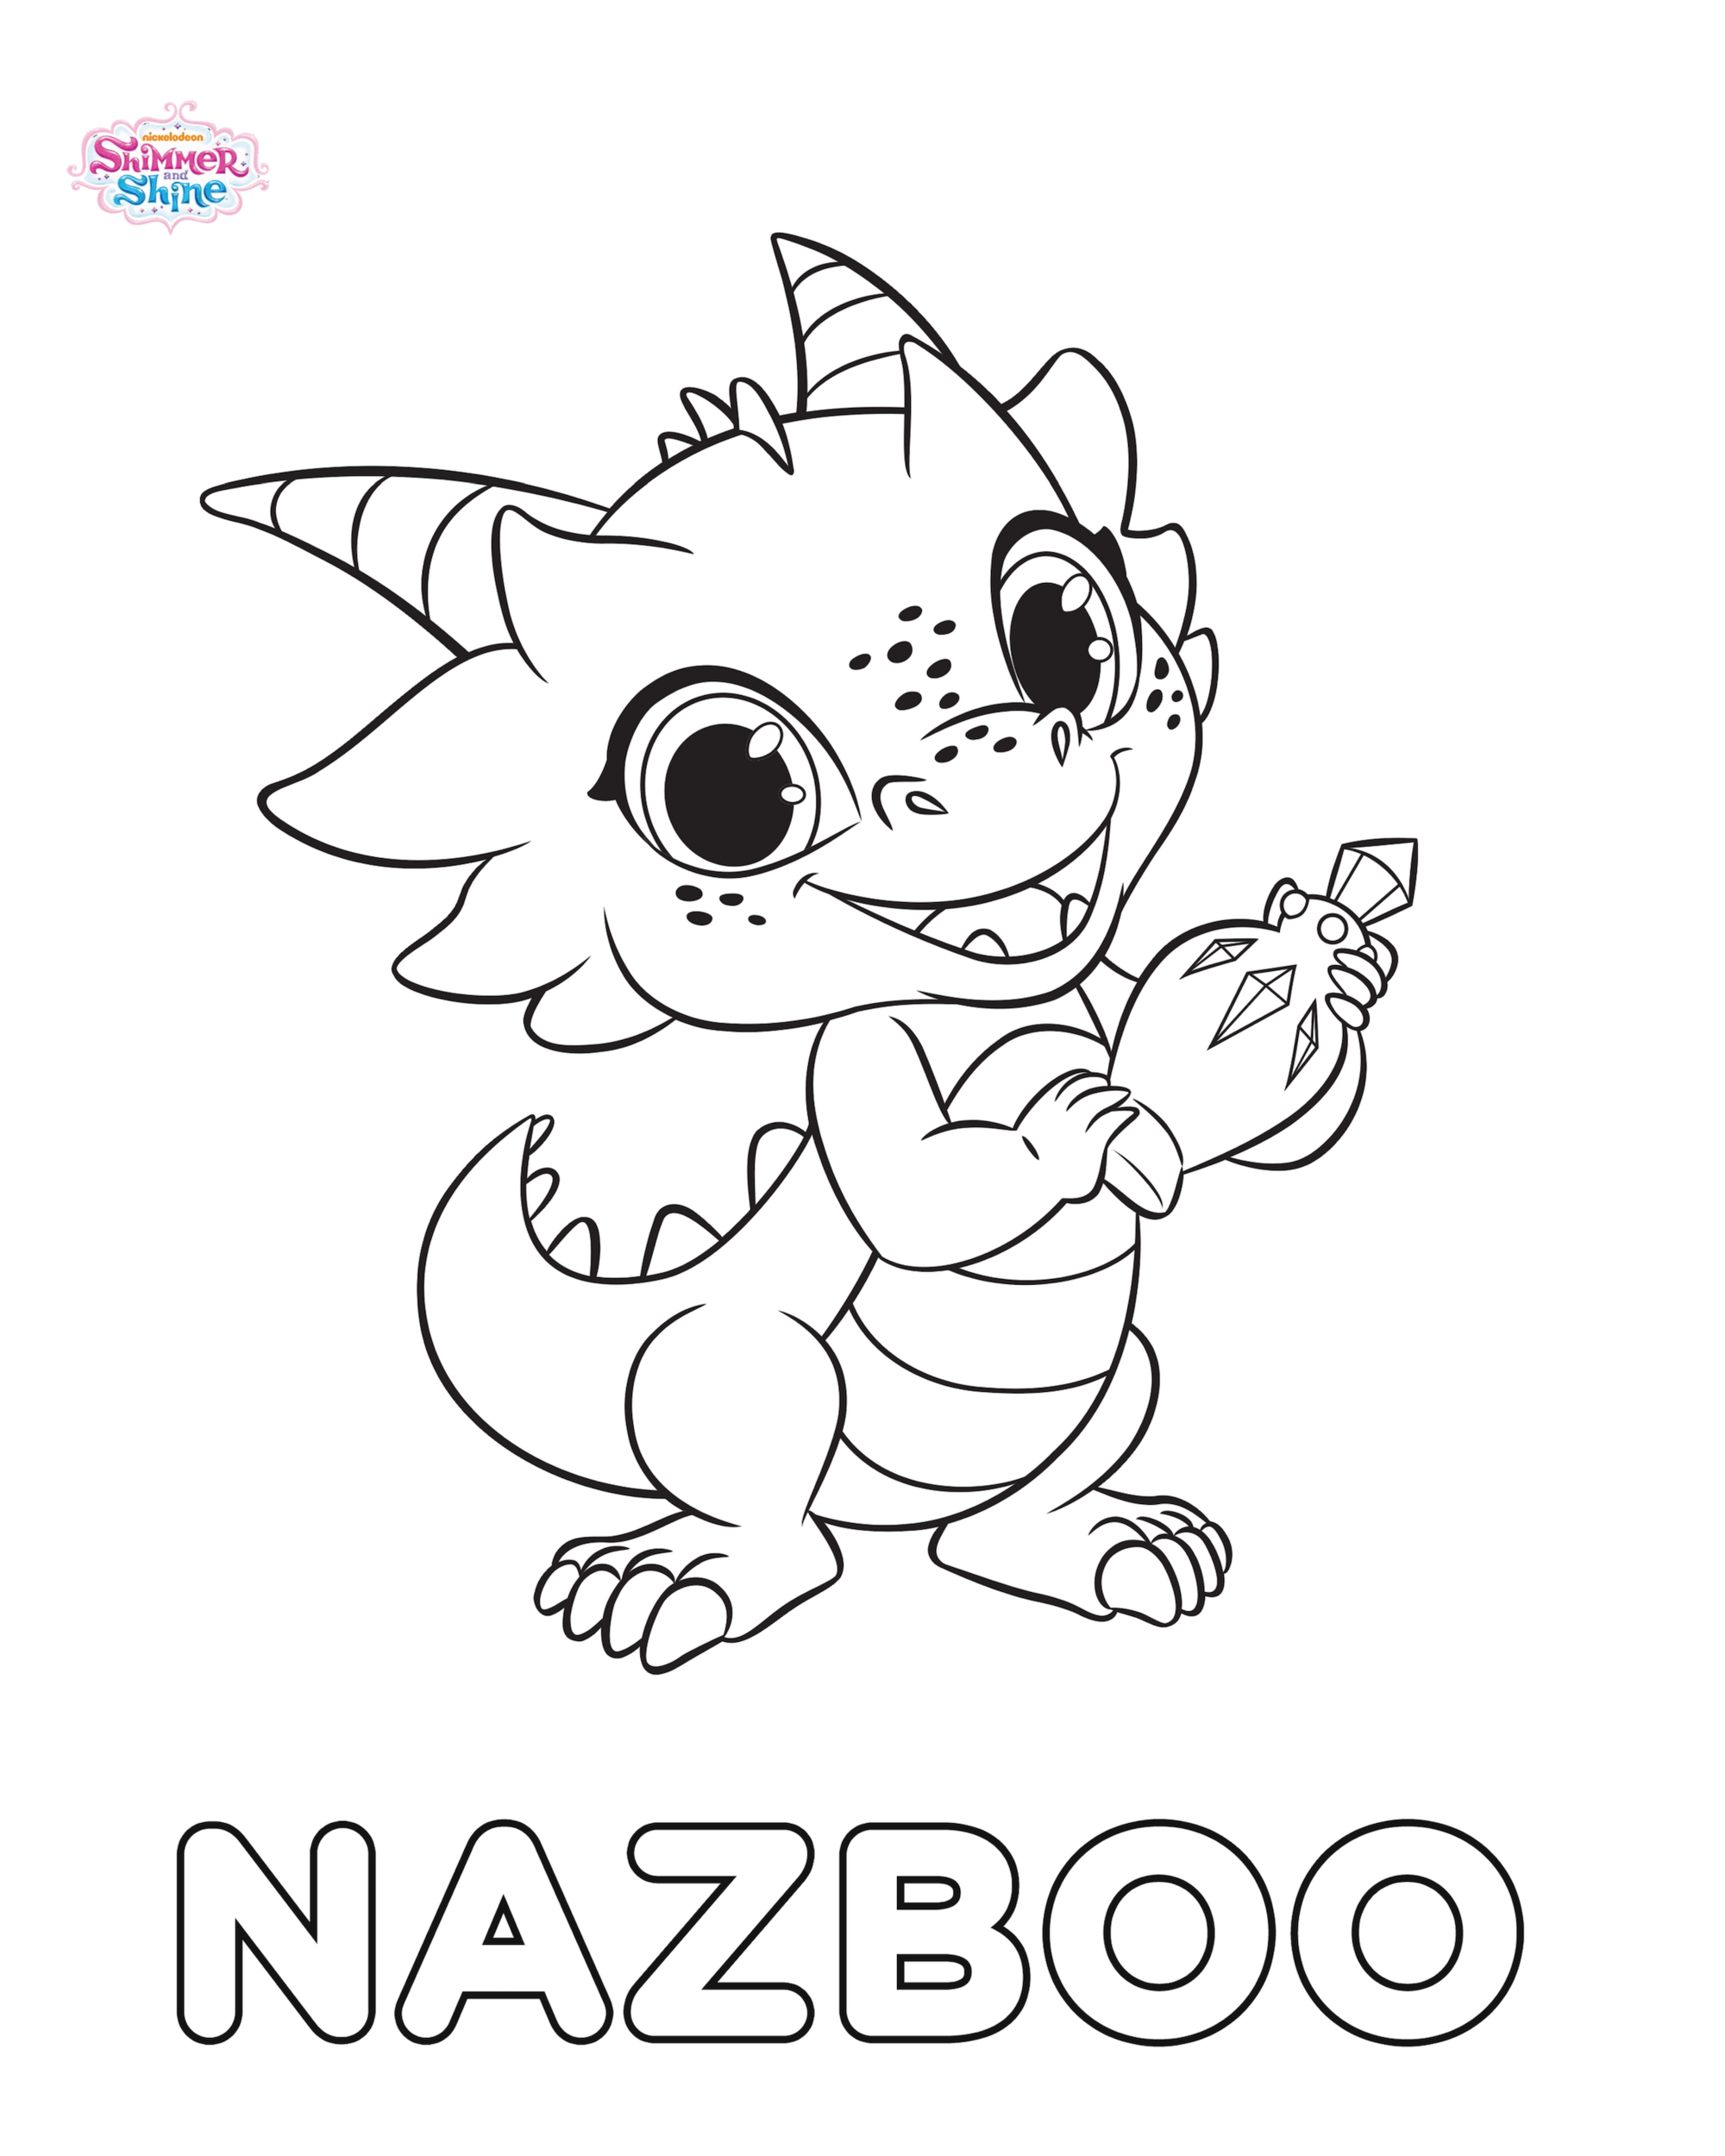 Image Nazboo Shimmer and Shine Coloring Pagepng